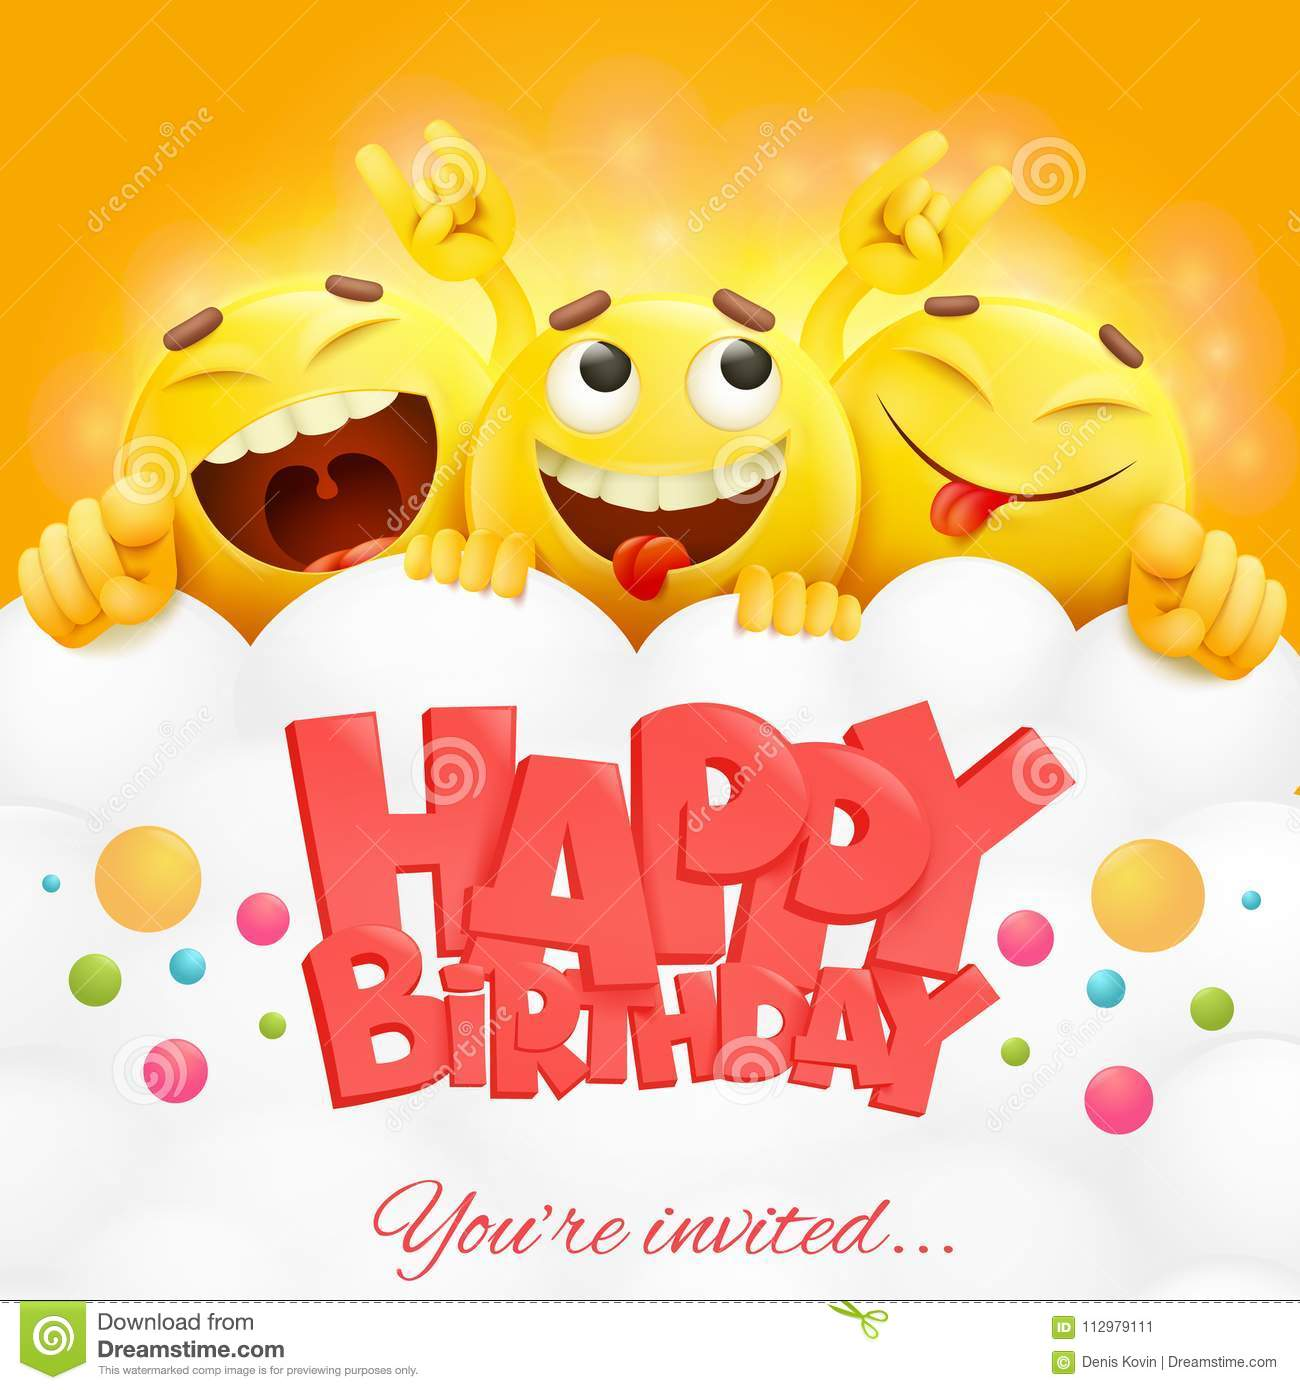 Smiley Yellow Faces Emoji Characters Happy Birthday Card